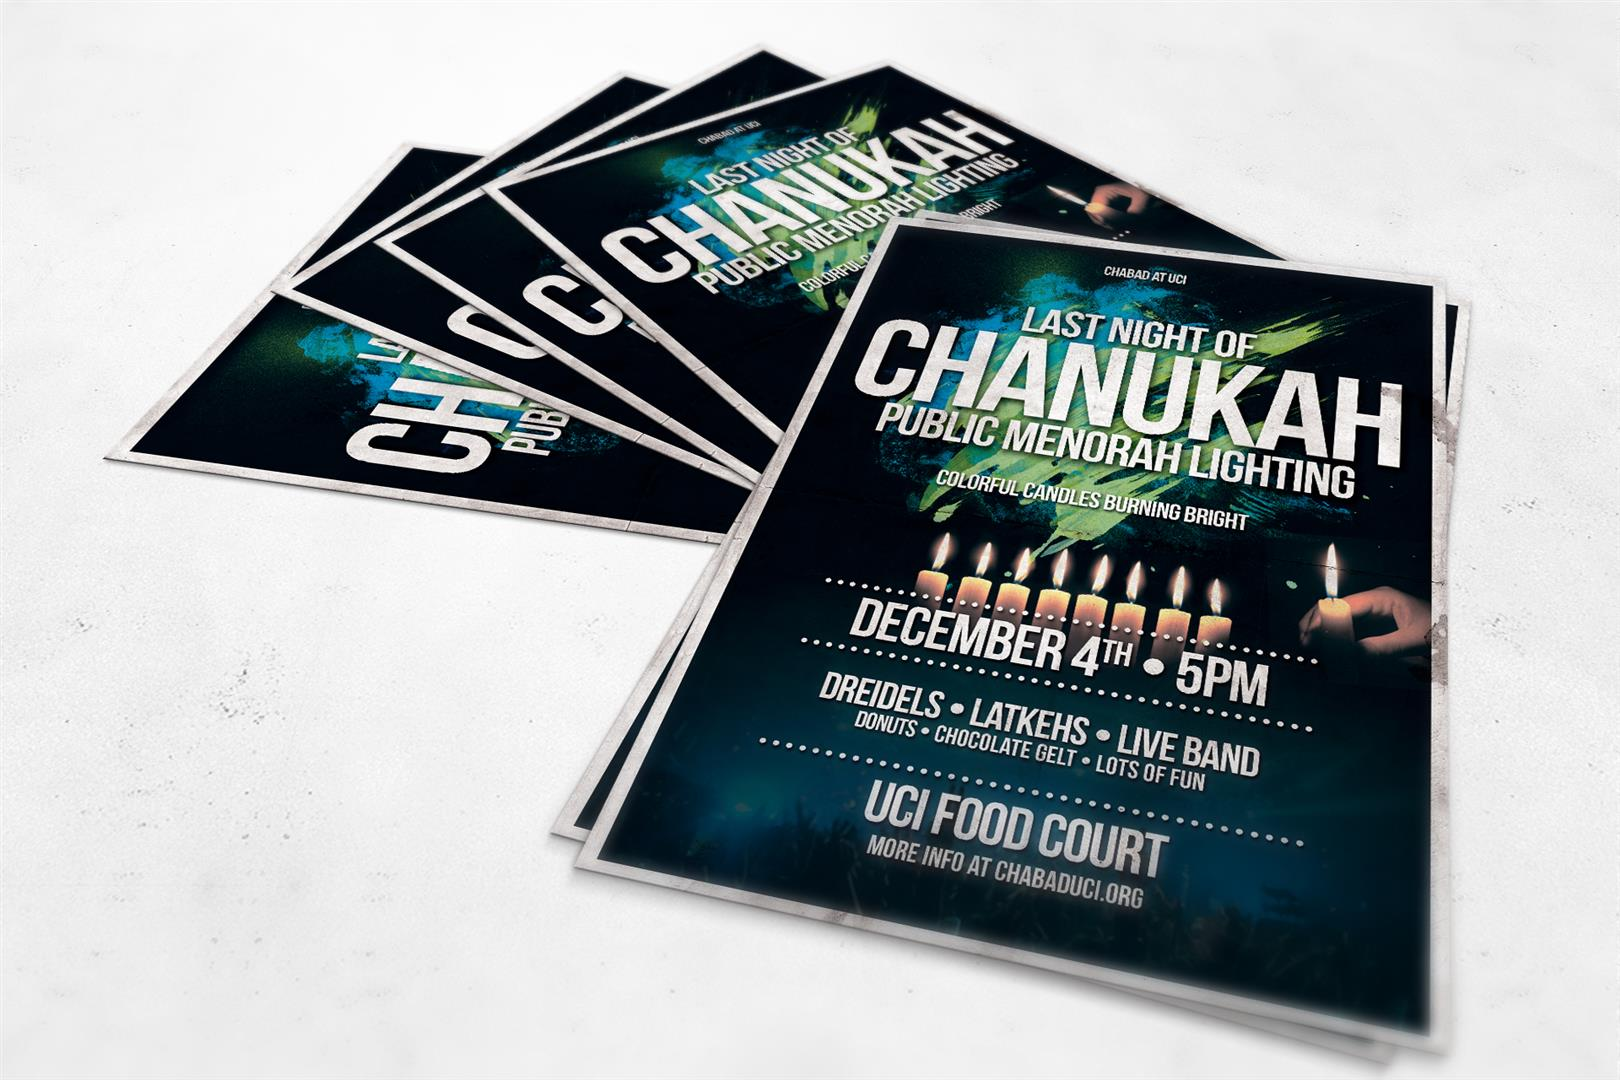 Chabad Chanukah Event Flyer